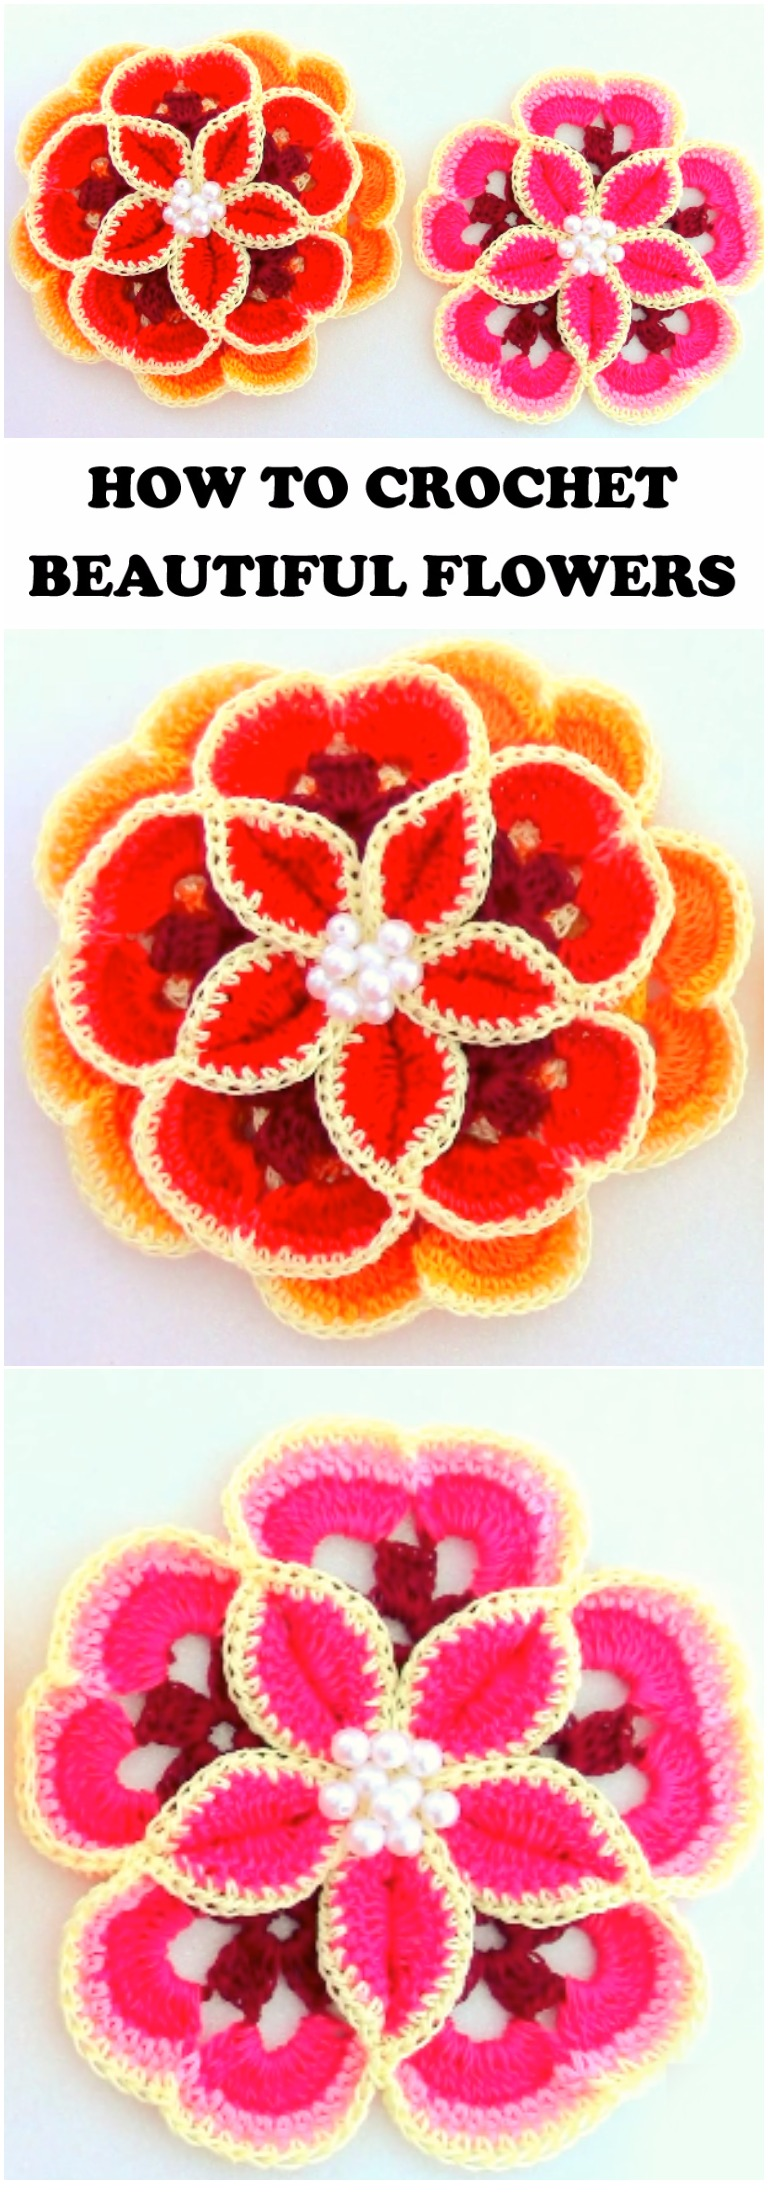 How To Crochet Beautiful Flowers